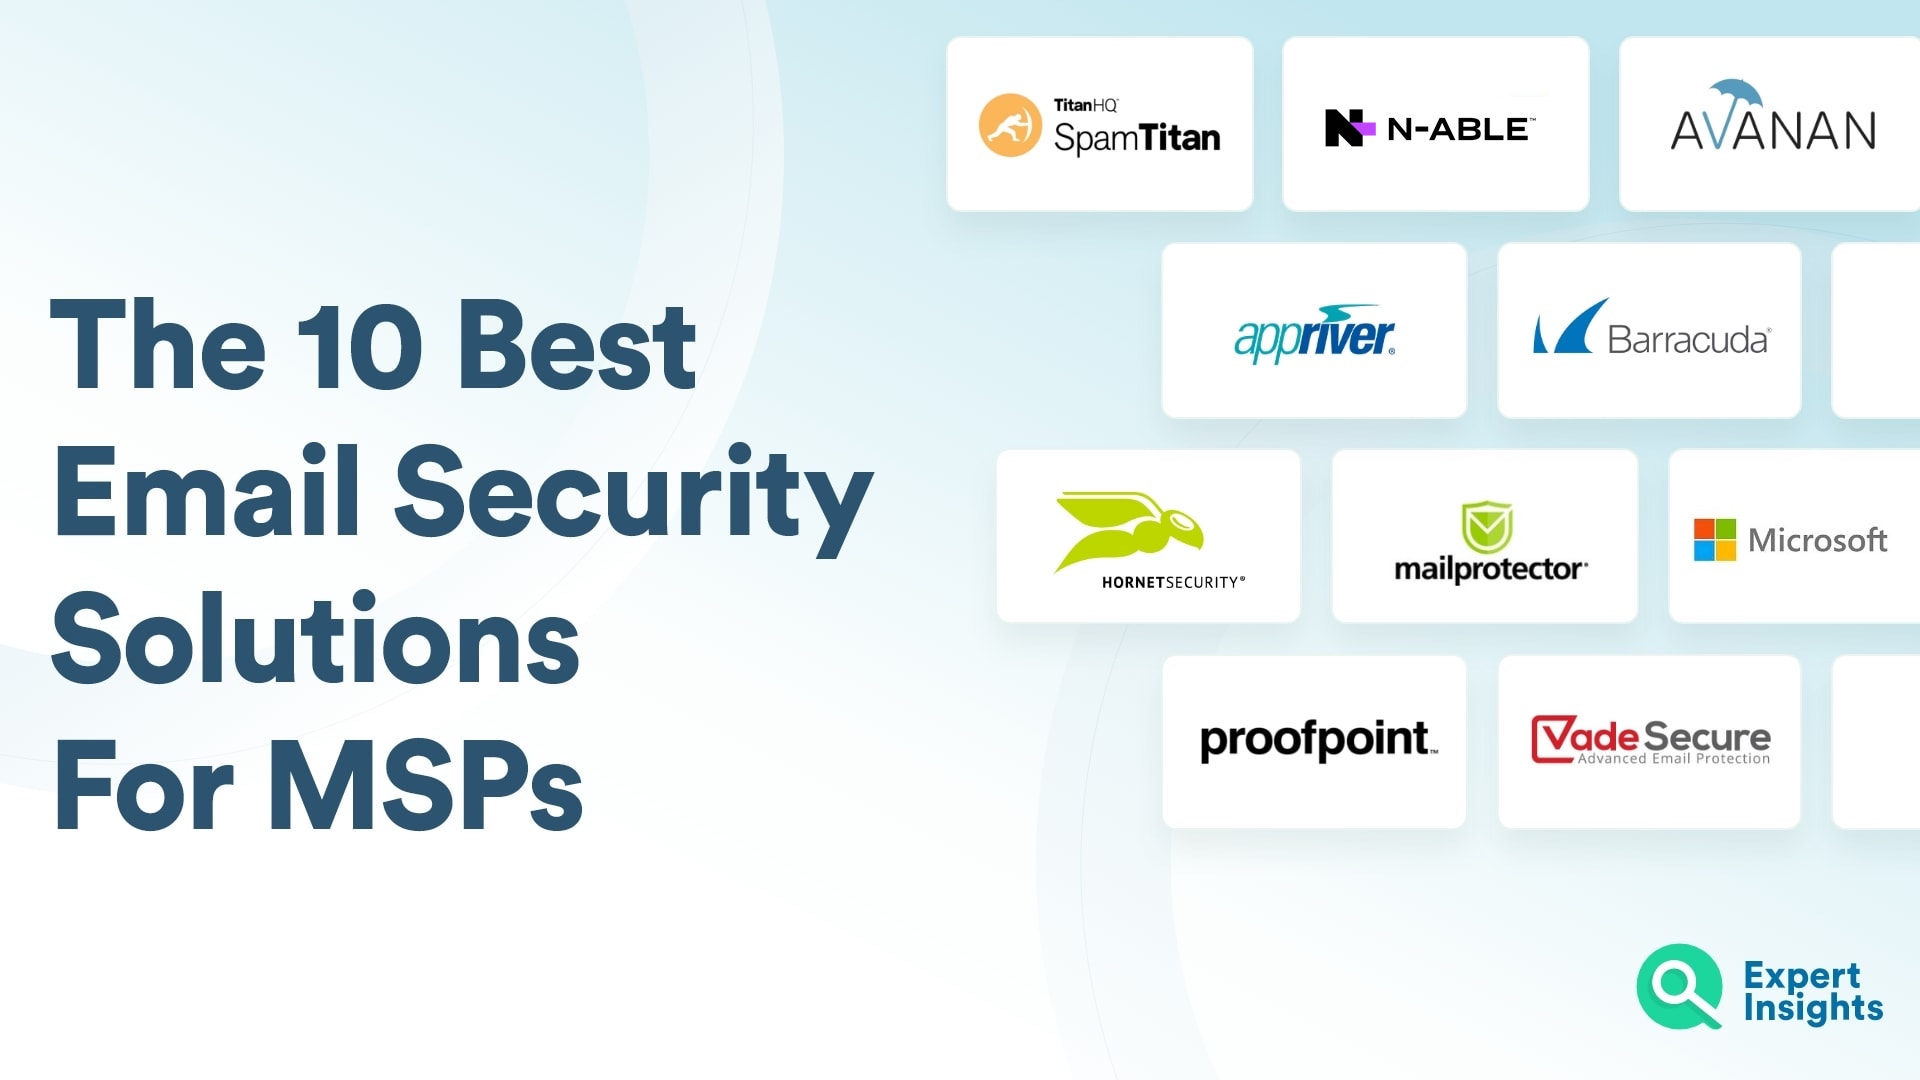 Top Email Security Solutions For MSPs - Expert Insights